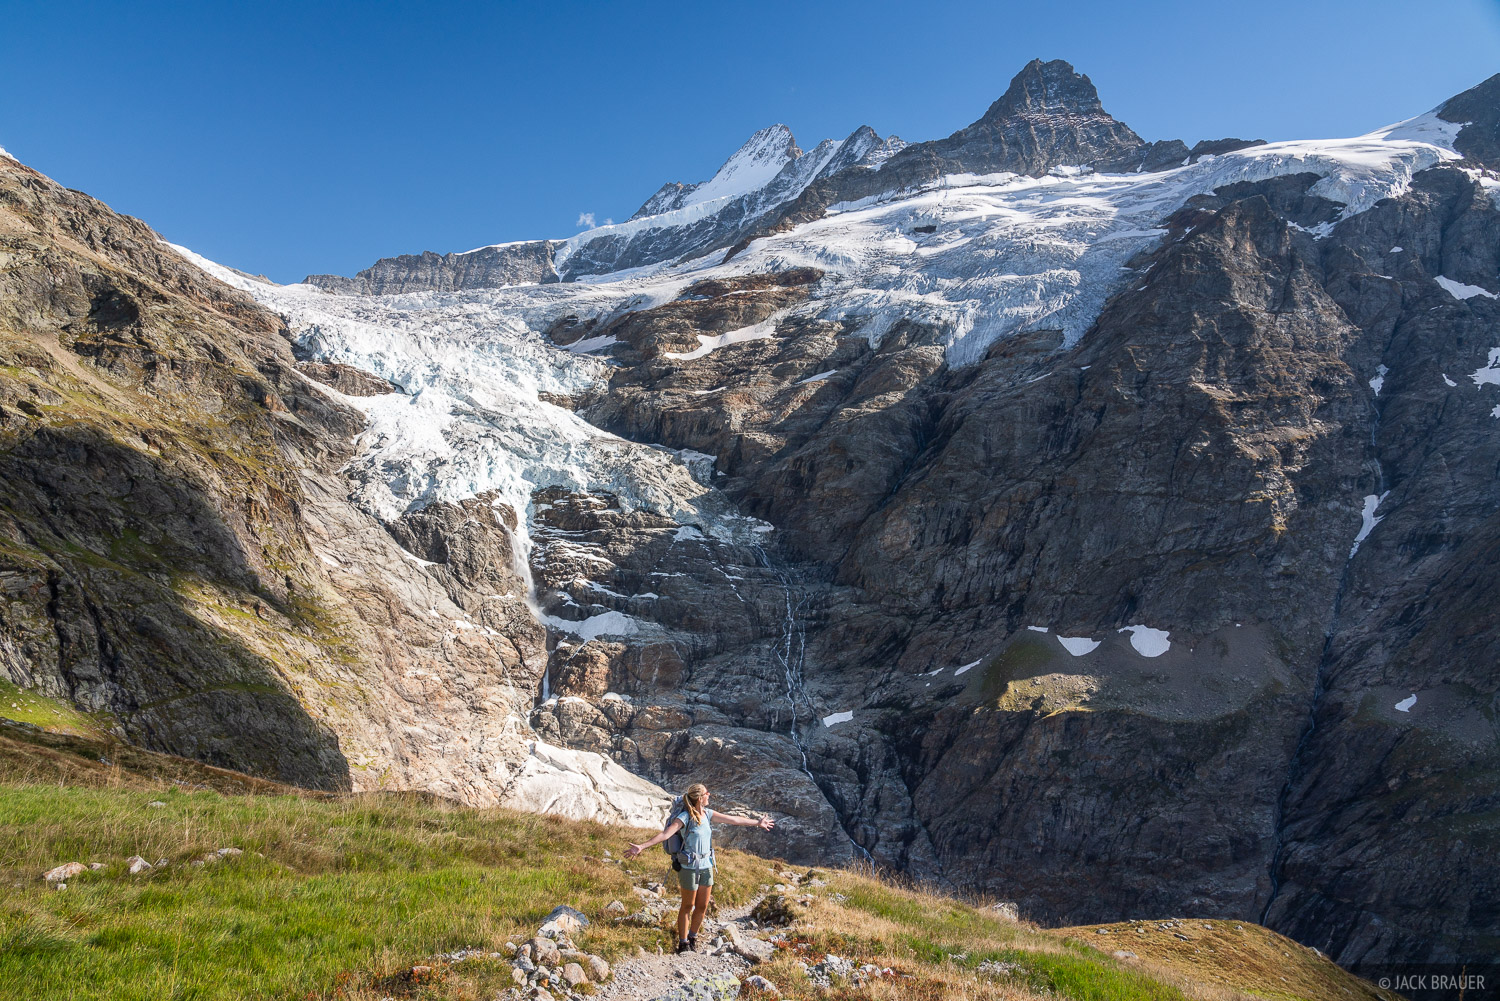 Basking in the glory of the scene near the Glecksteinhütte, with the Oberer Grindelwald Glacier behind.